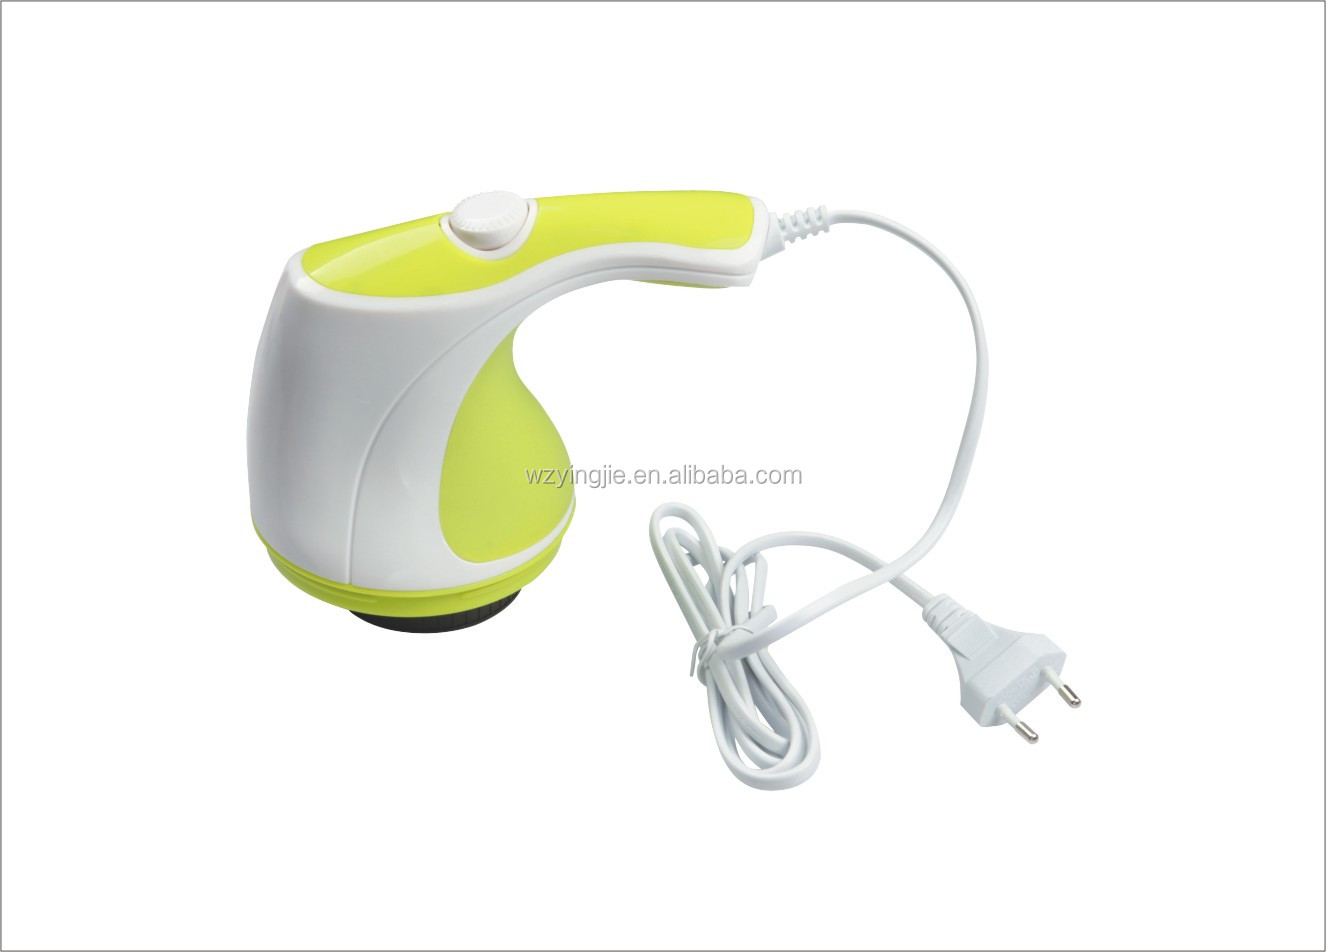 personal massager, massager product,relax and vibro tone massager with CE ROHS certificate